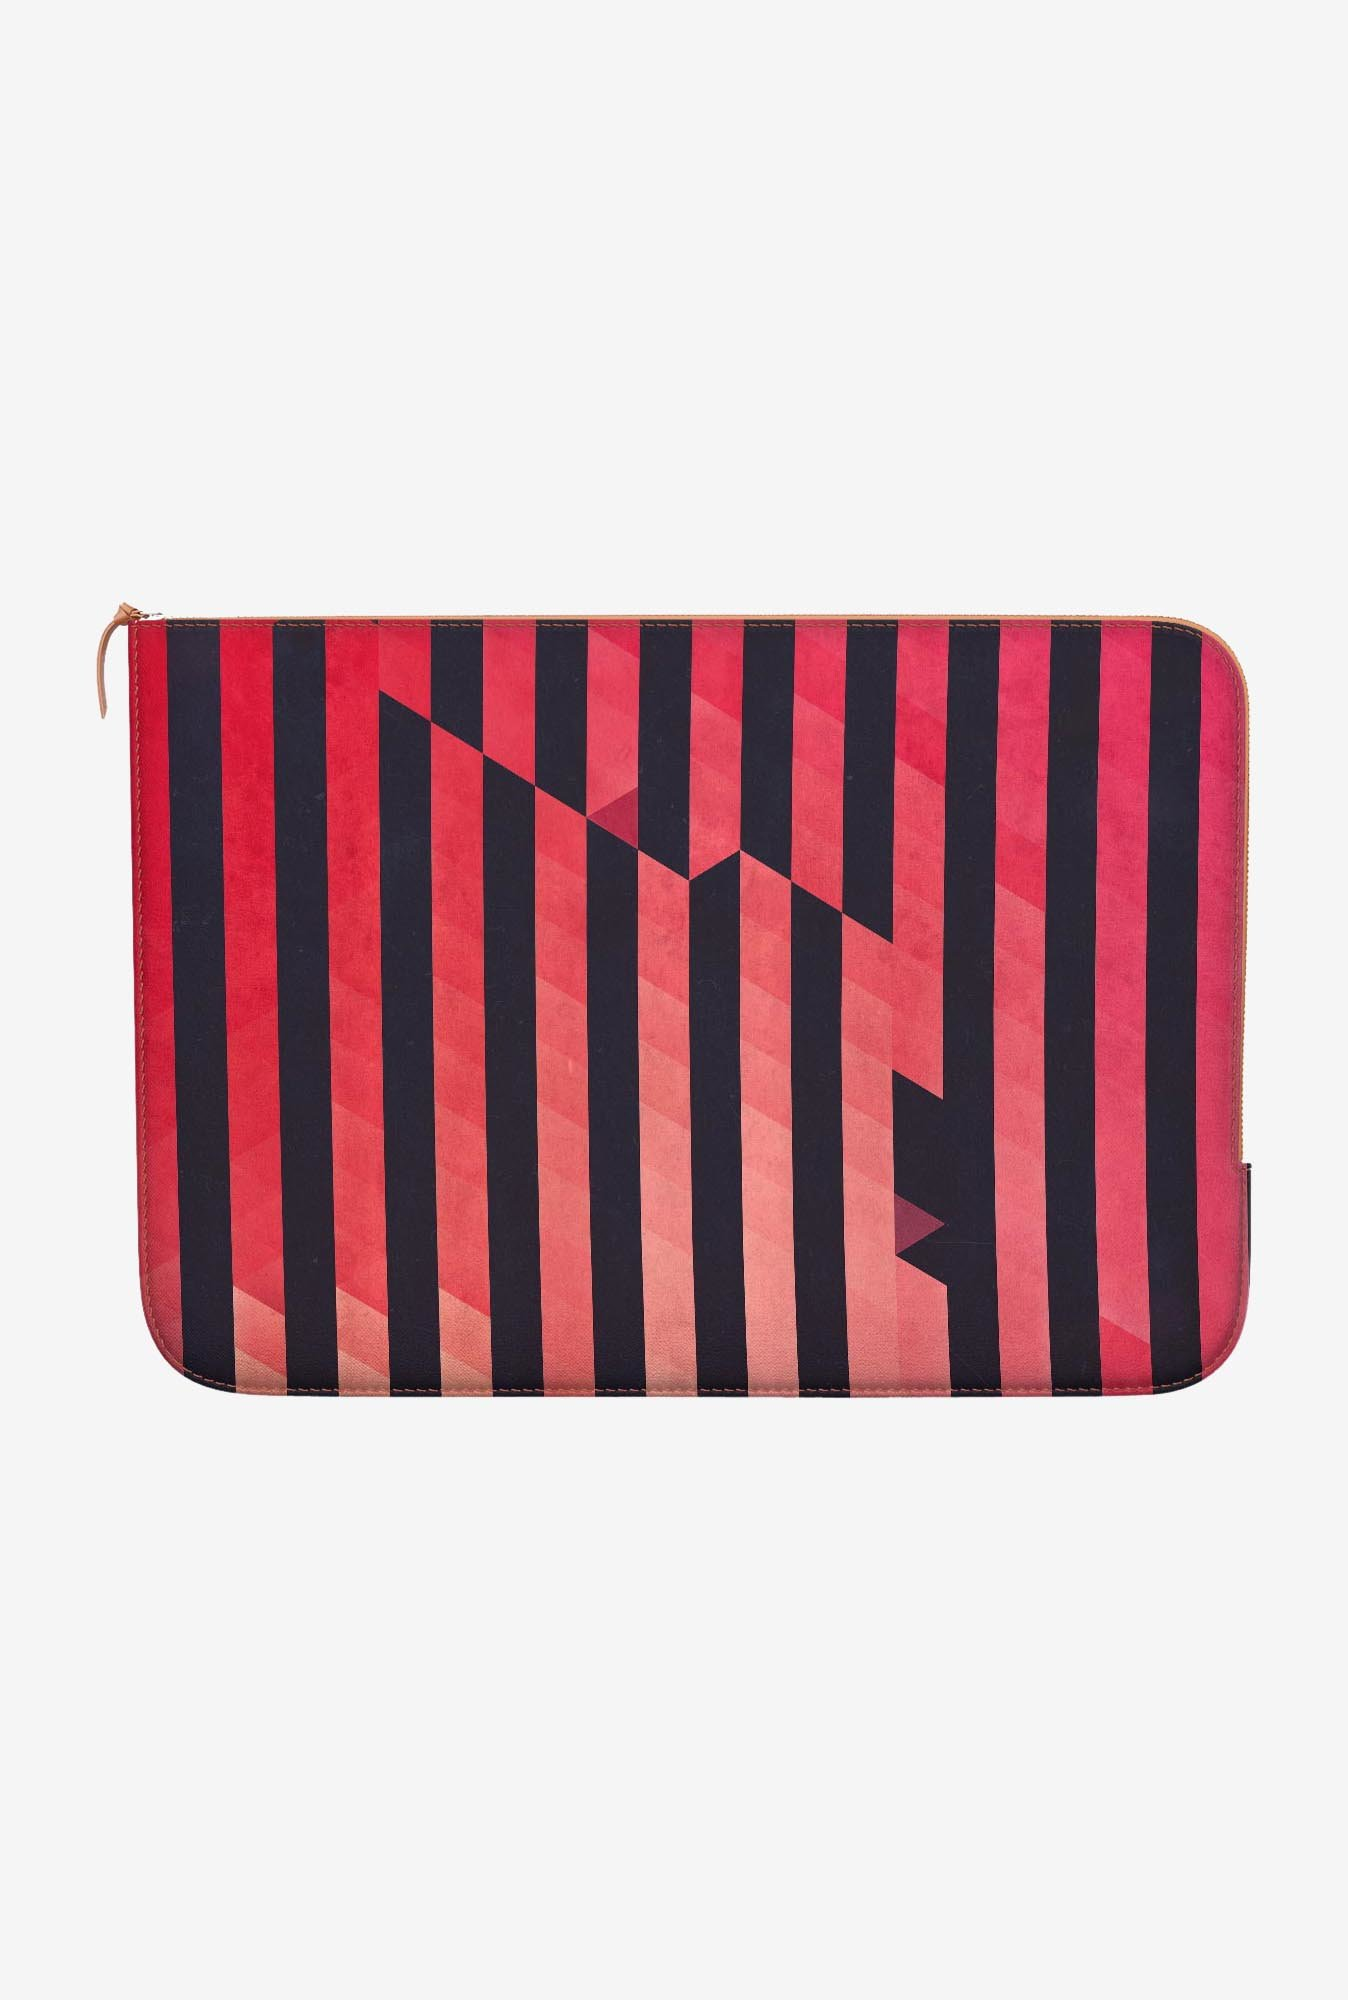 "DailyObjects Slyg Stryyp Macbook Air 13"" Zippered Sleeve"